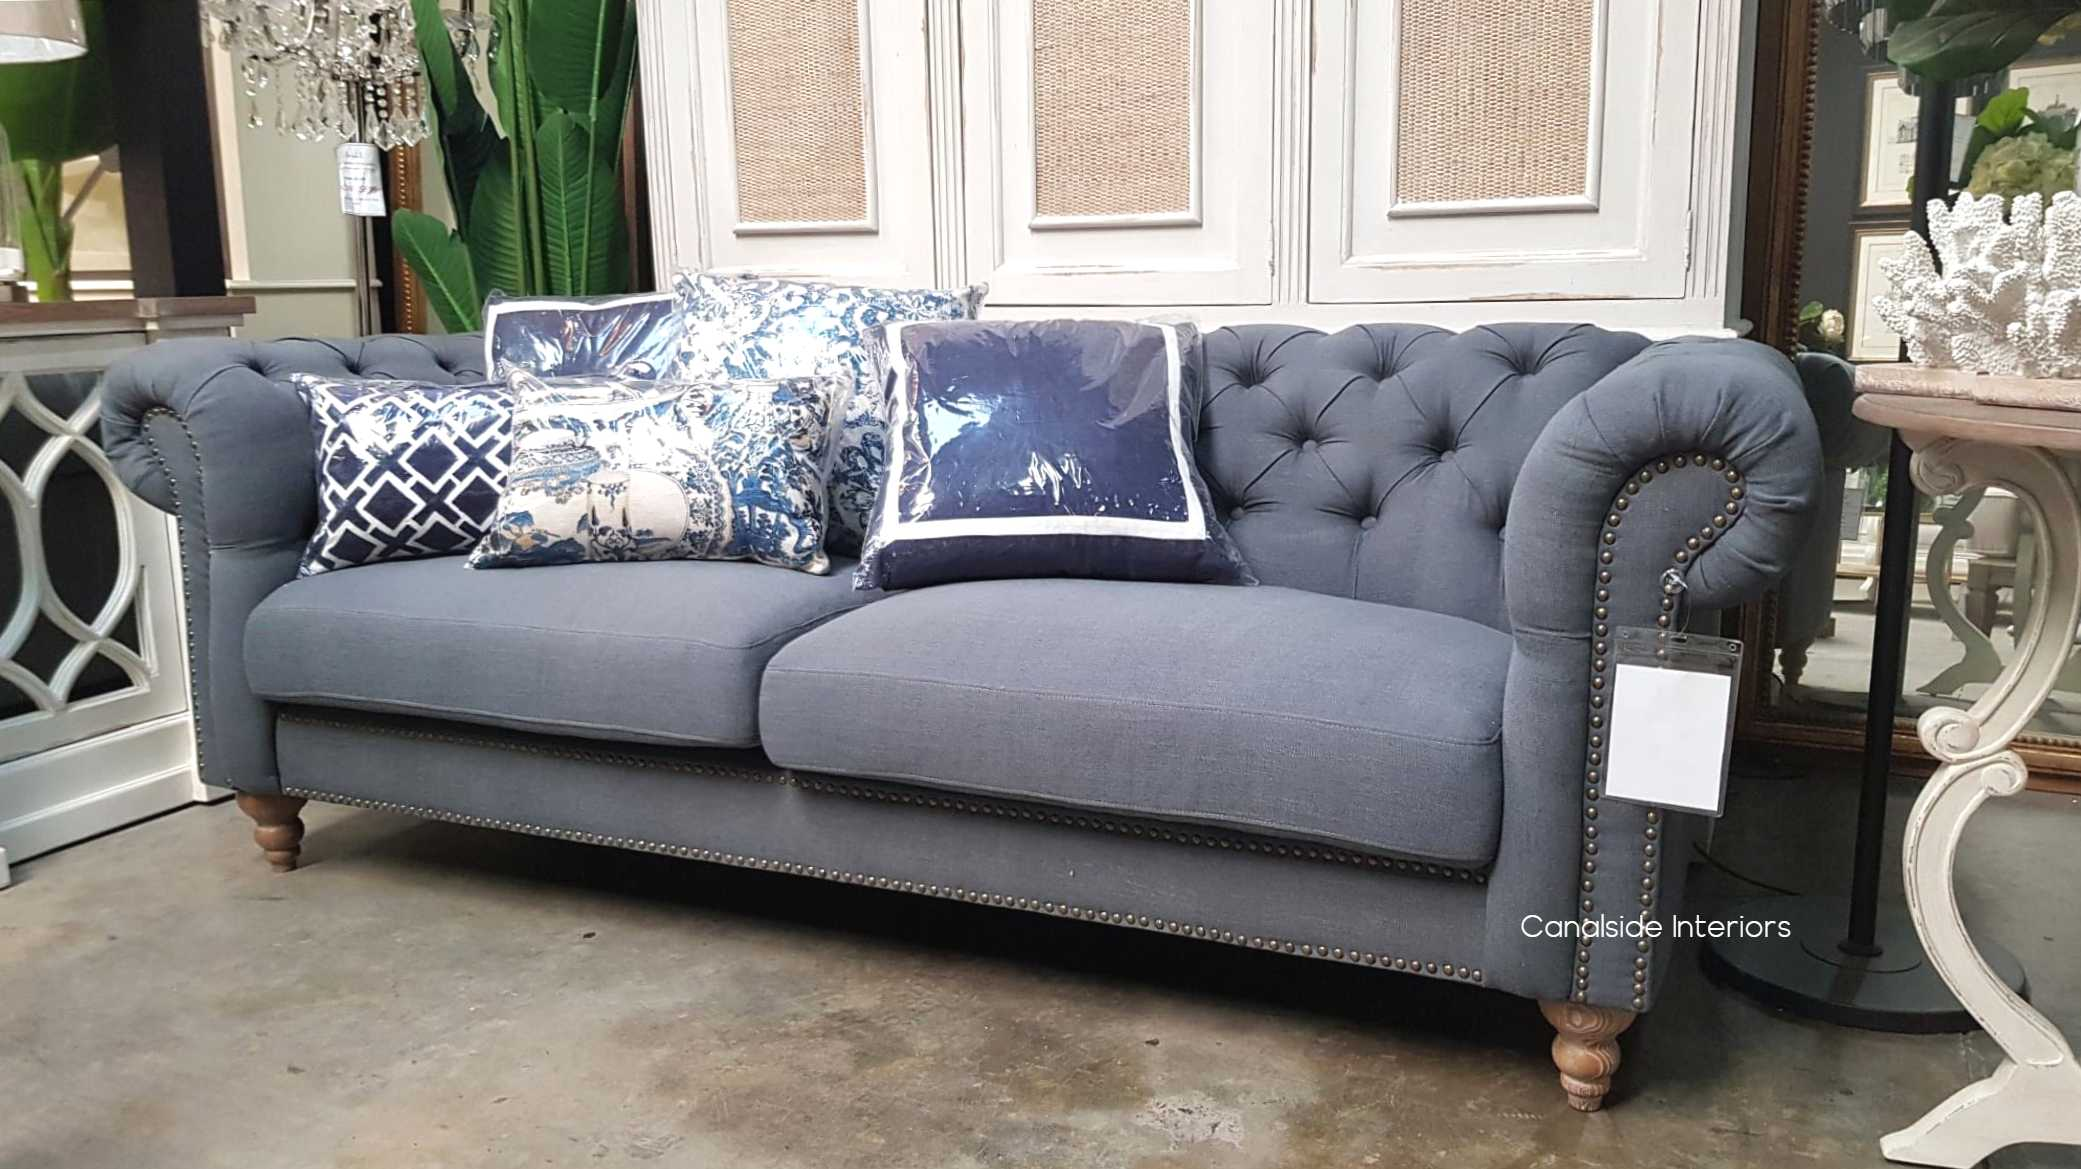 Clegane Chesterfield Sofa